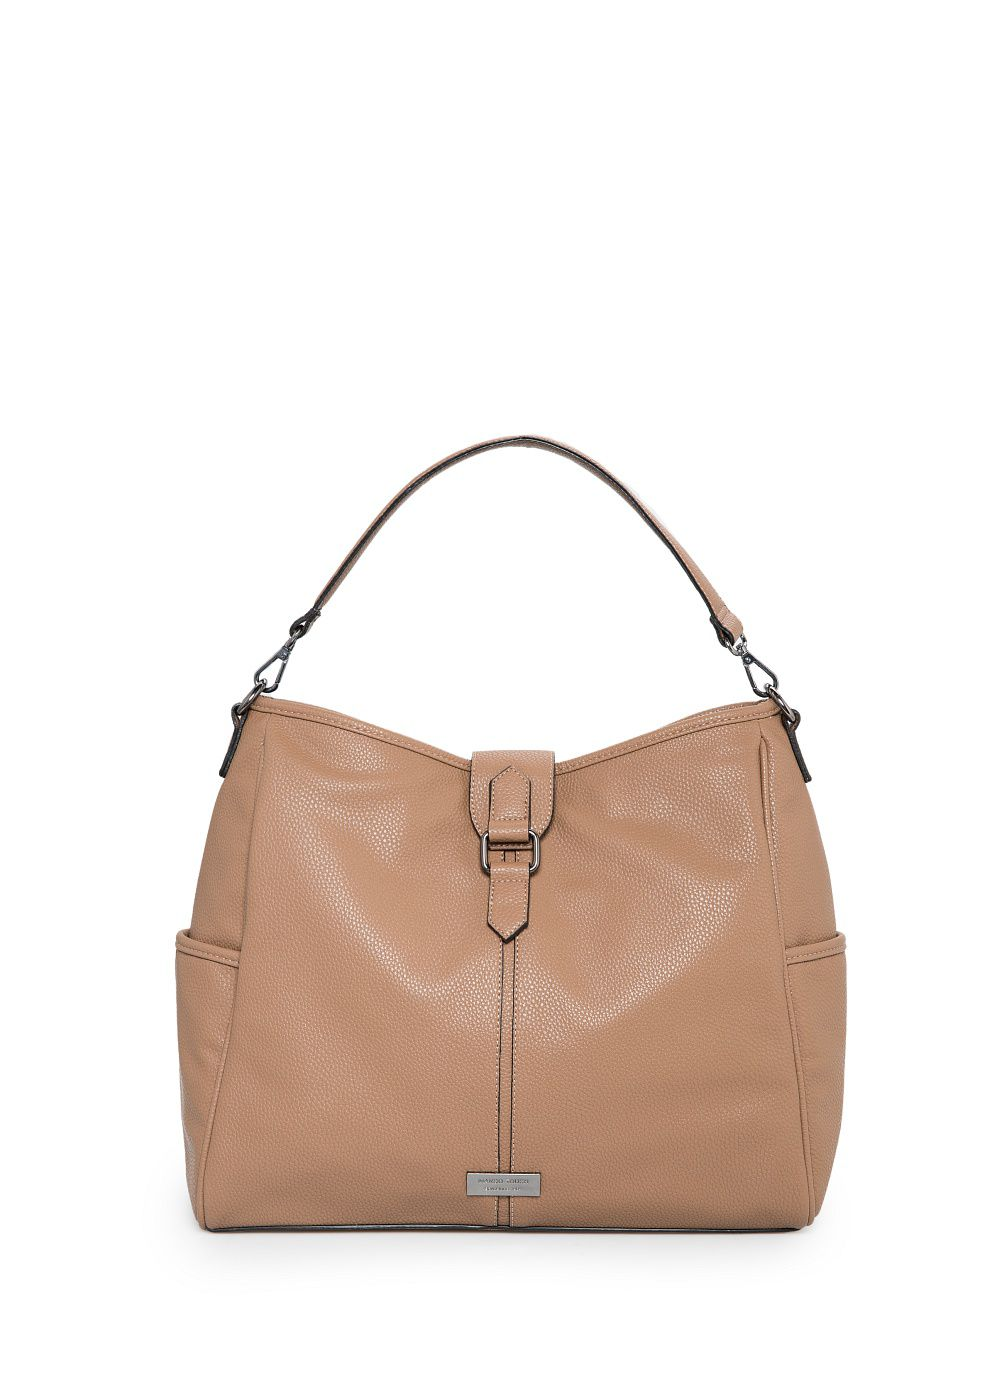 Plebbed hobo bag